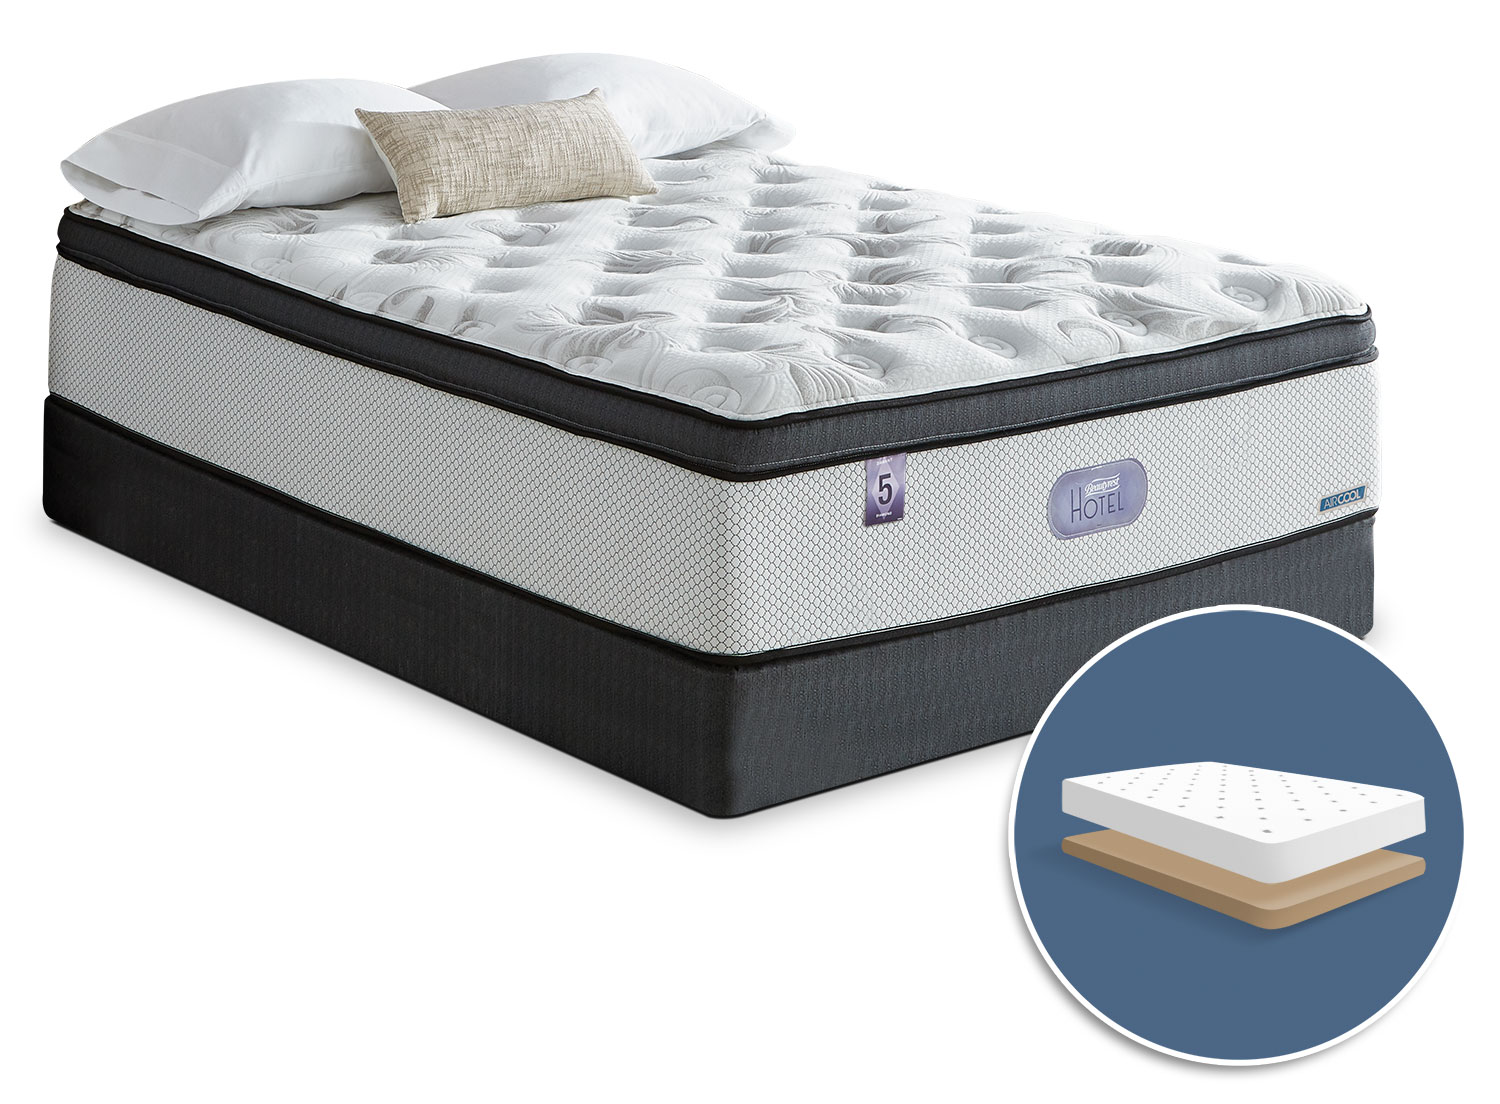 Mattresses and Bedding - Simmons Beautyrest® Hotel Diamond 5.0 Comfort Top Firm Low-Profile Full Mattress Set